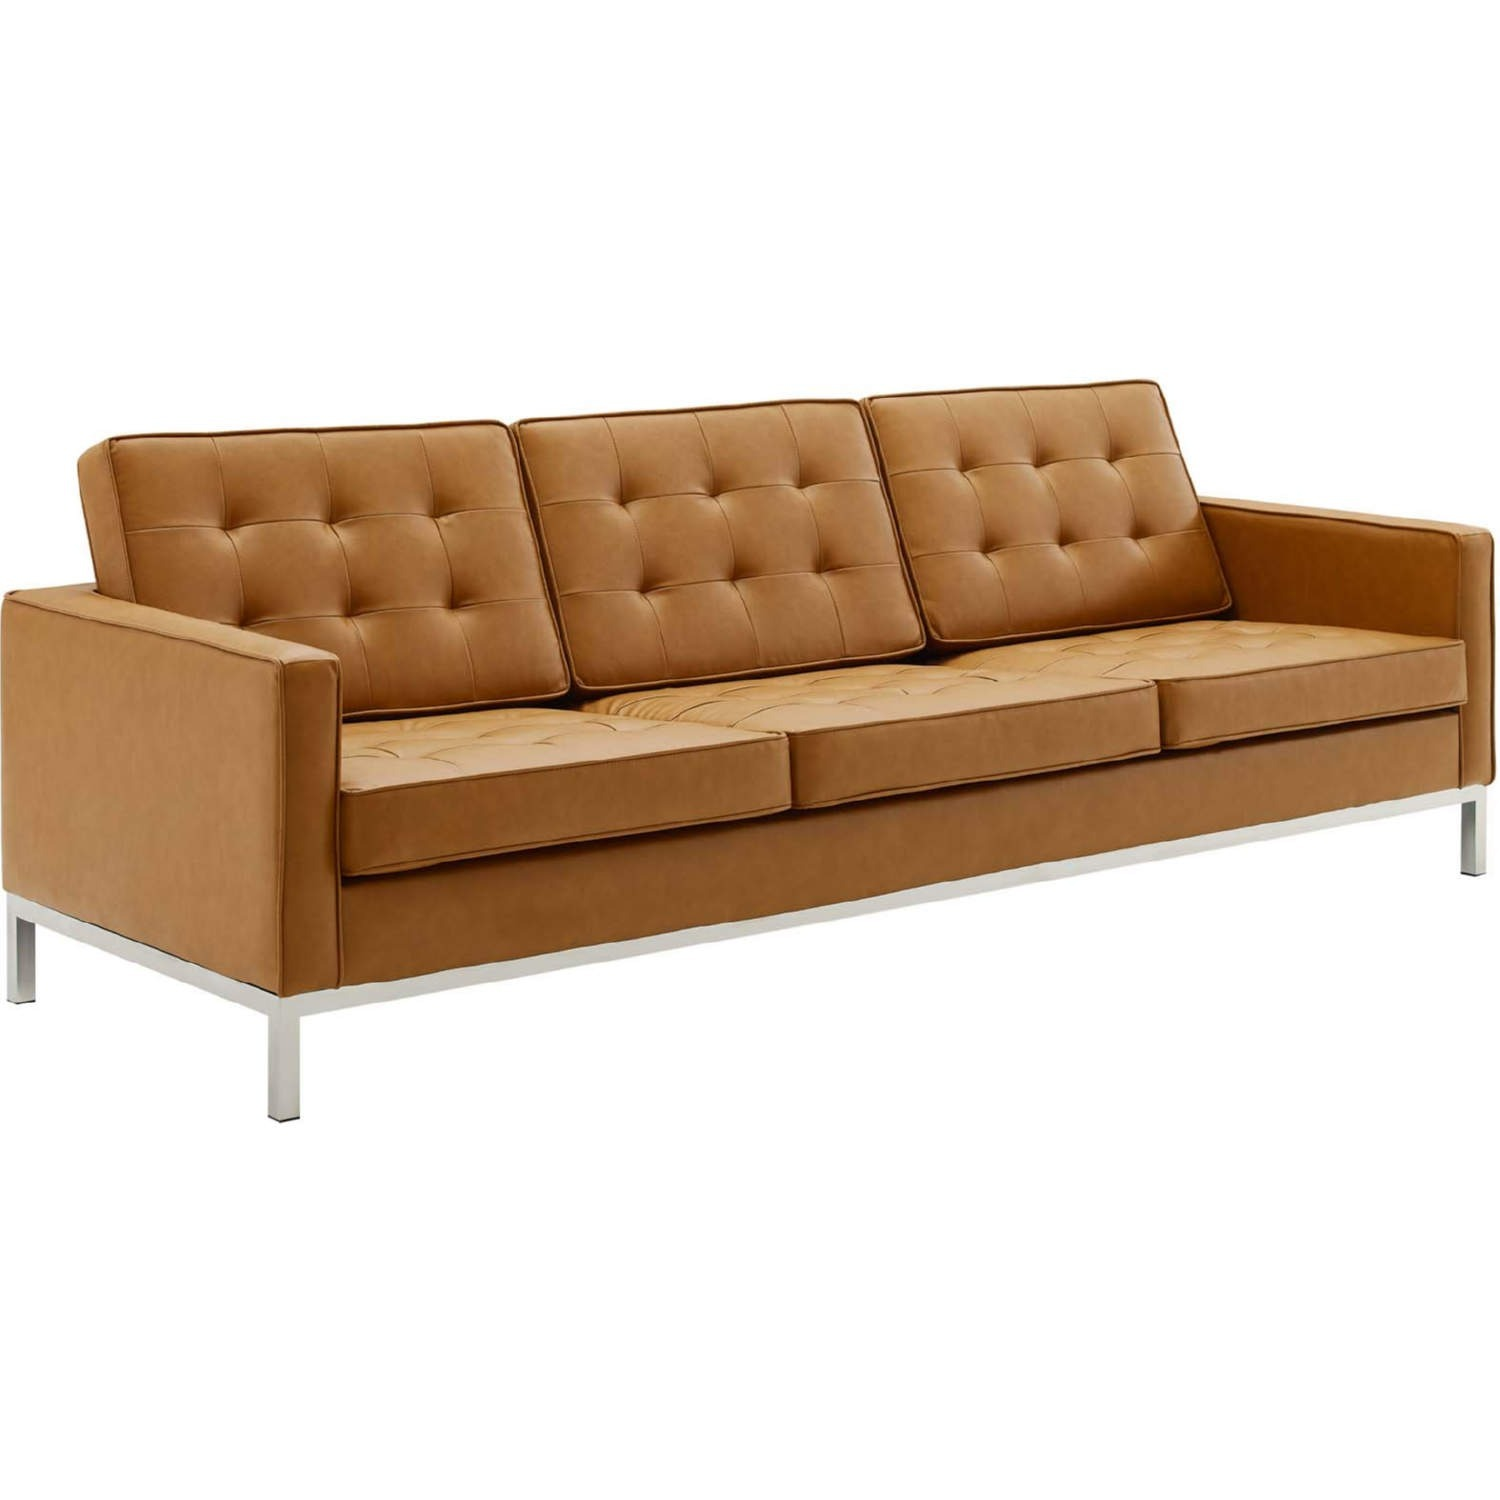 Modern Sofa In Tan Faux Leather Upholstery - image-1